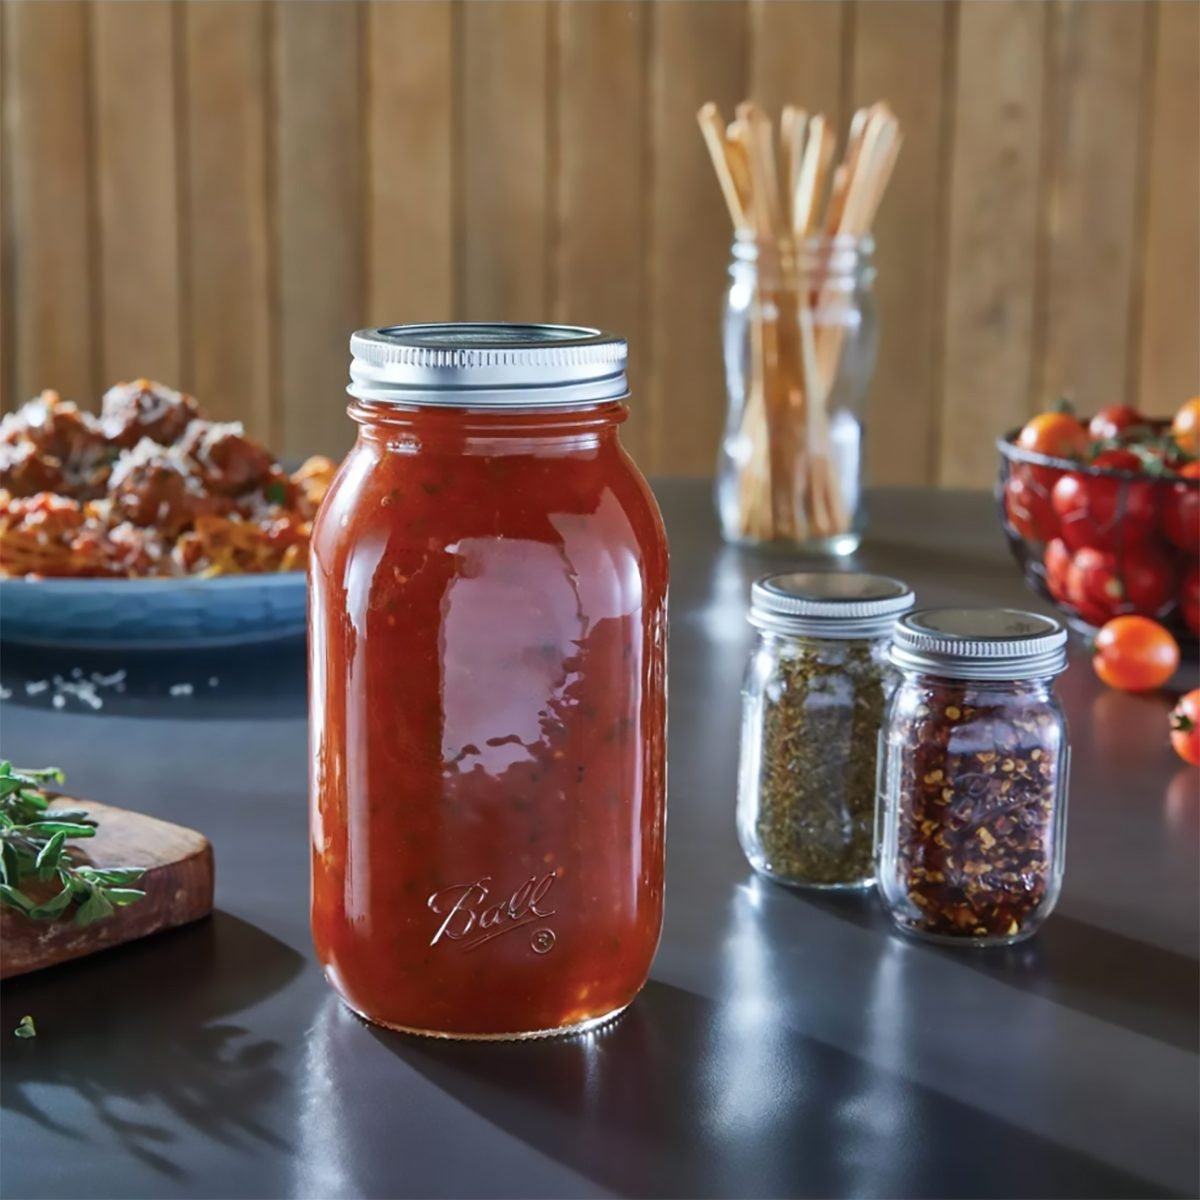 Ball 12ct 32oz Smooth-Sided Mason Jar with Lid and Band - Regular Mouth